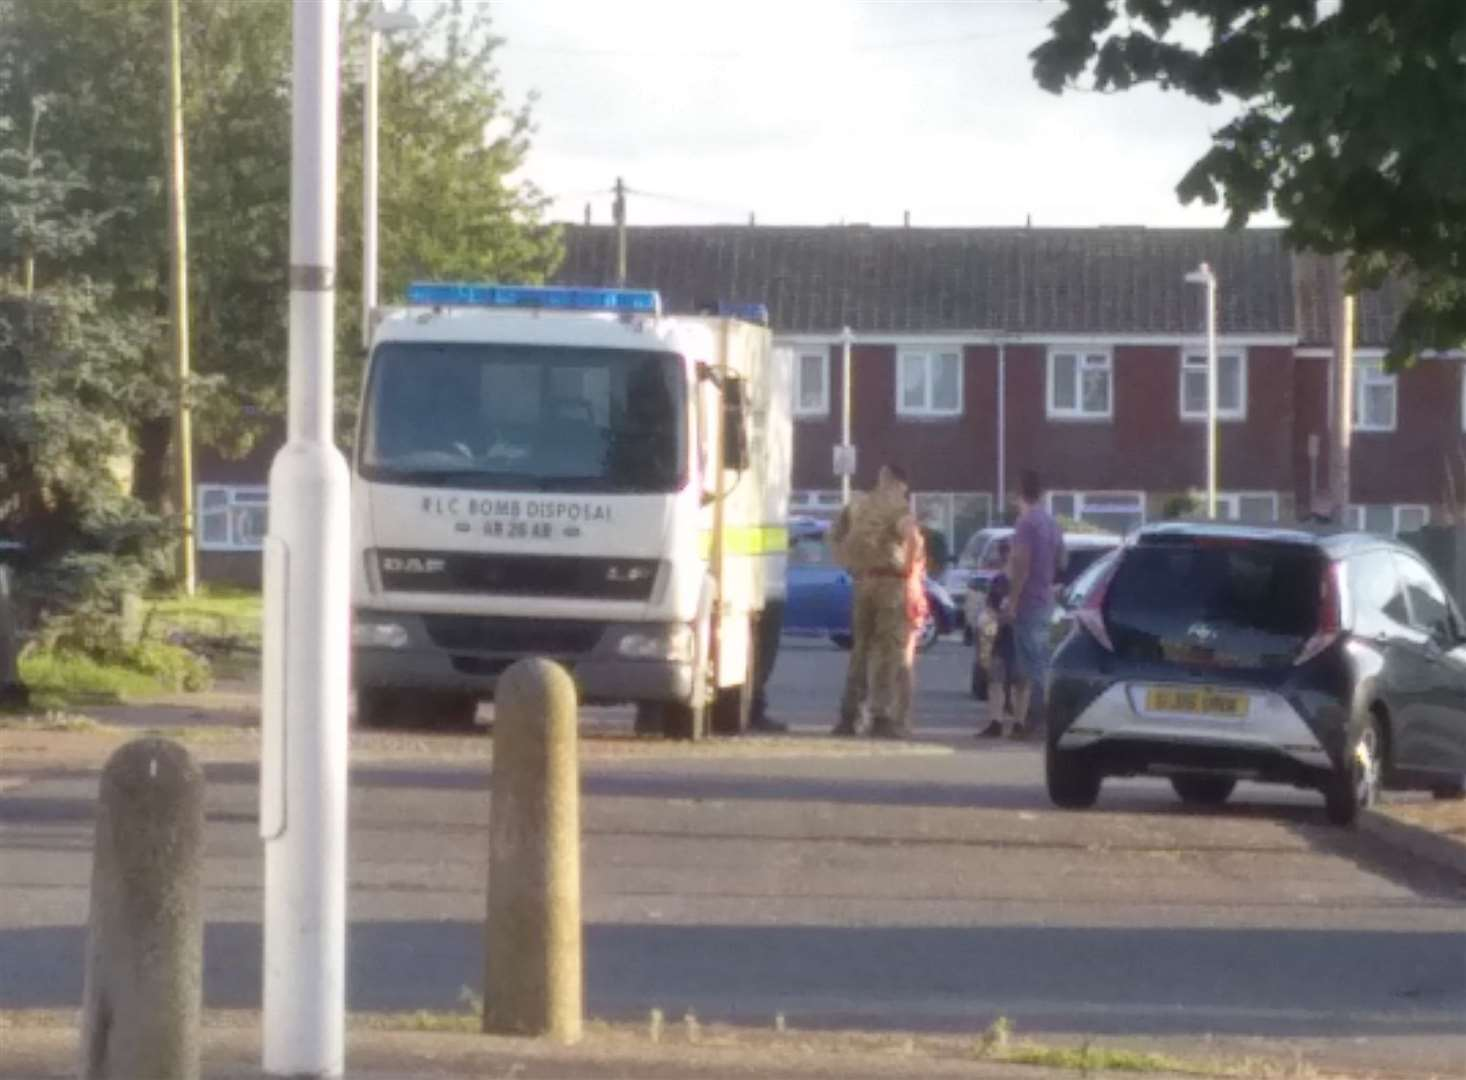 A bomb disposal vehicle outside the William Pitt Avenue property last night Picture: Sarita Claire